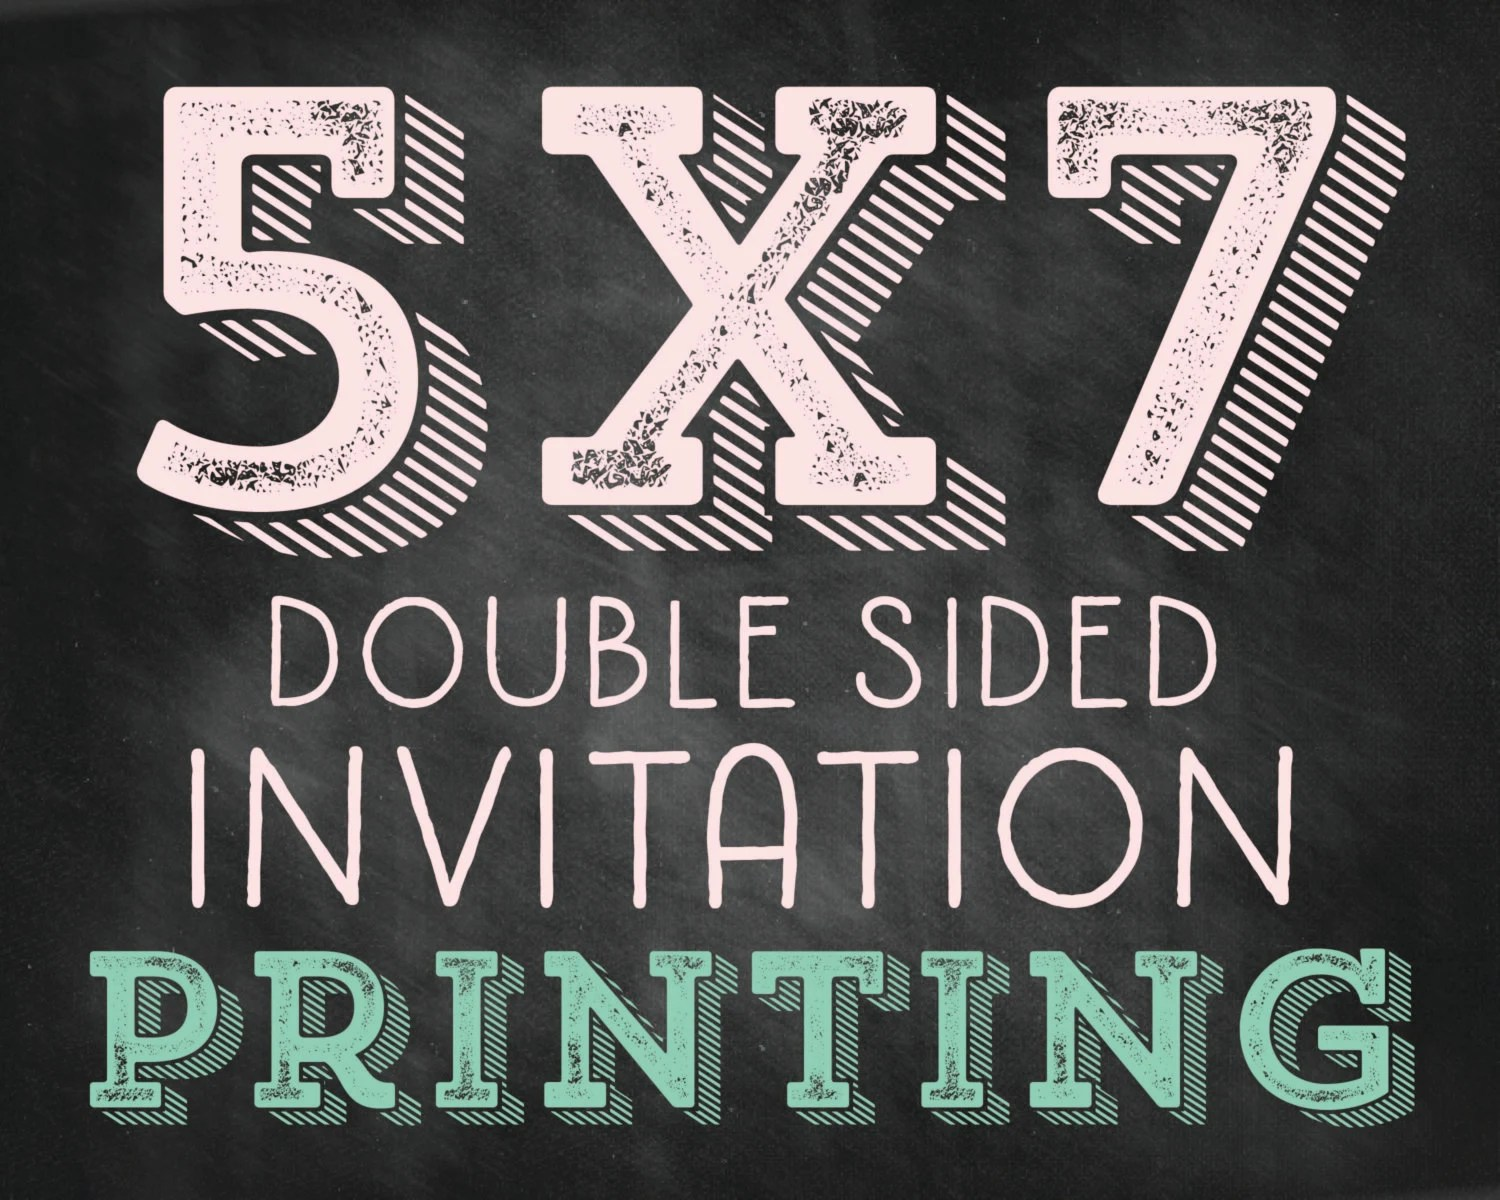 5x7 Double Sided Invitation Printing Including Envelopes